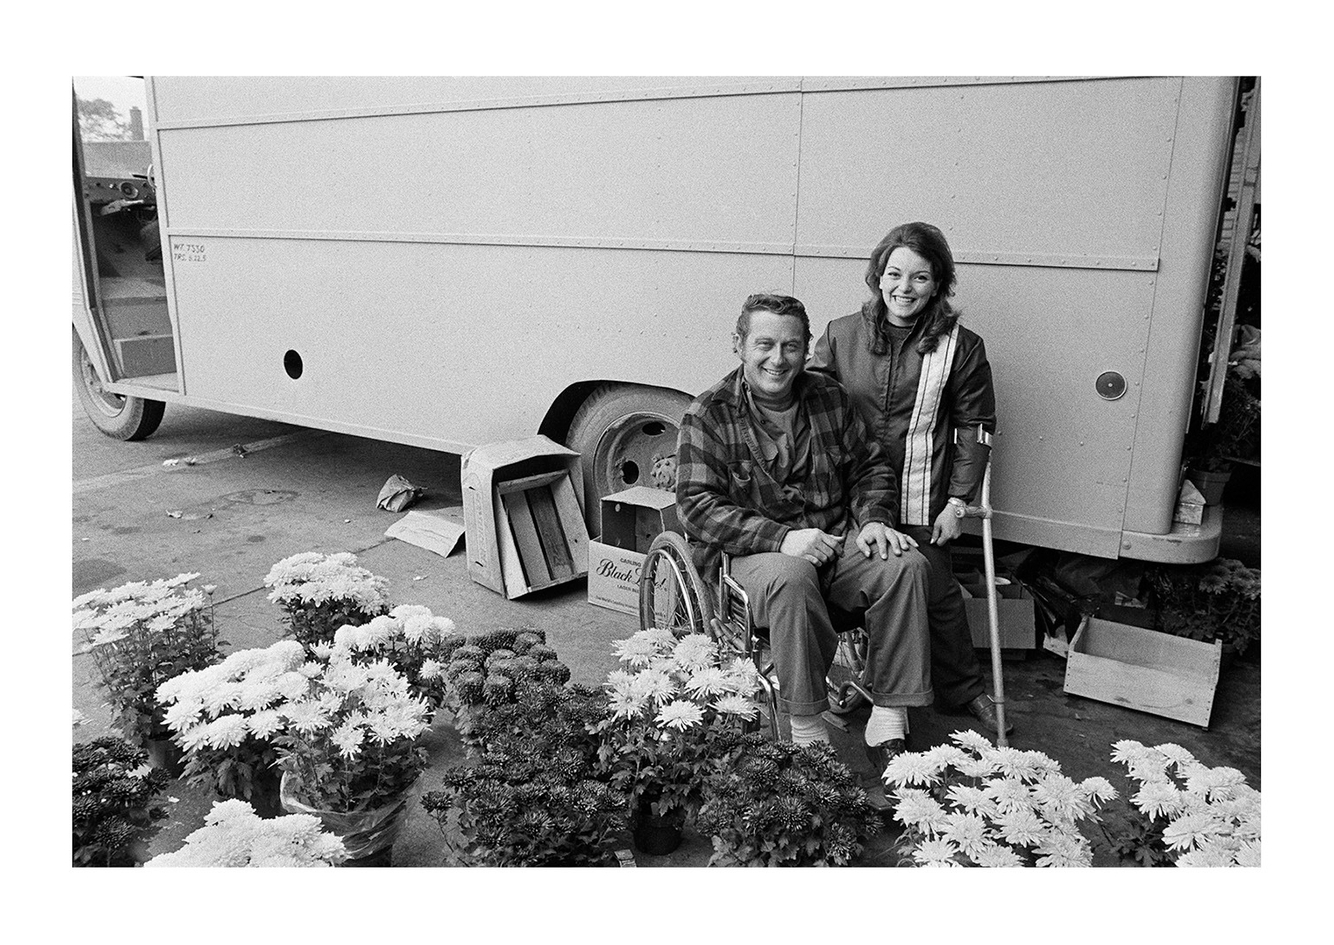 A Handicapped Couple Selling Flowers at Easten Market, Detroit 1972